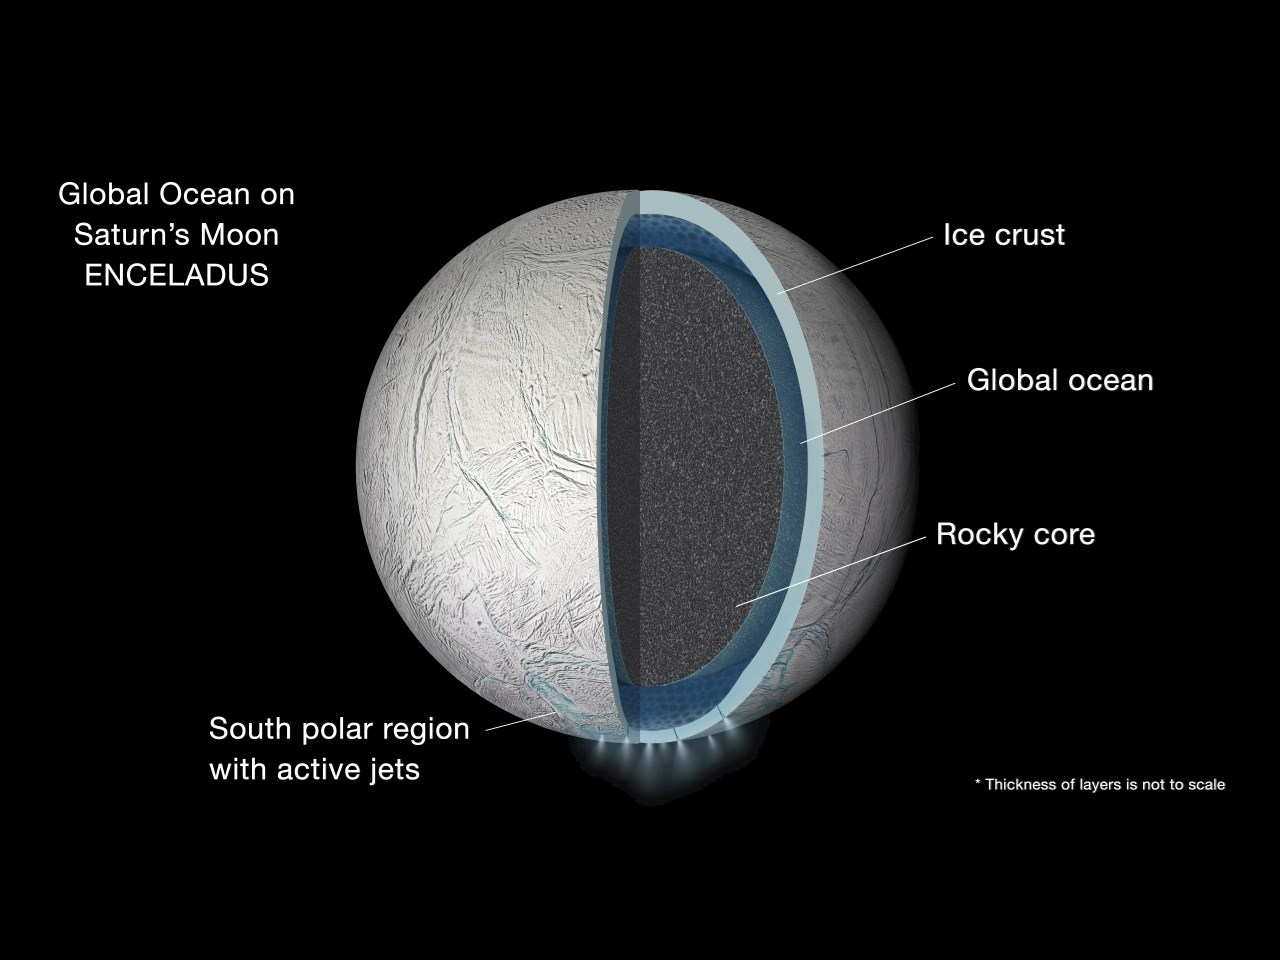 Illustration of the interior of Saturn's moon Enceladus